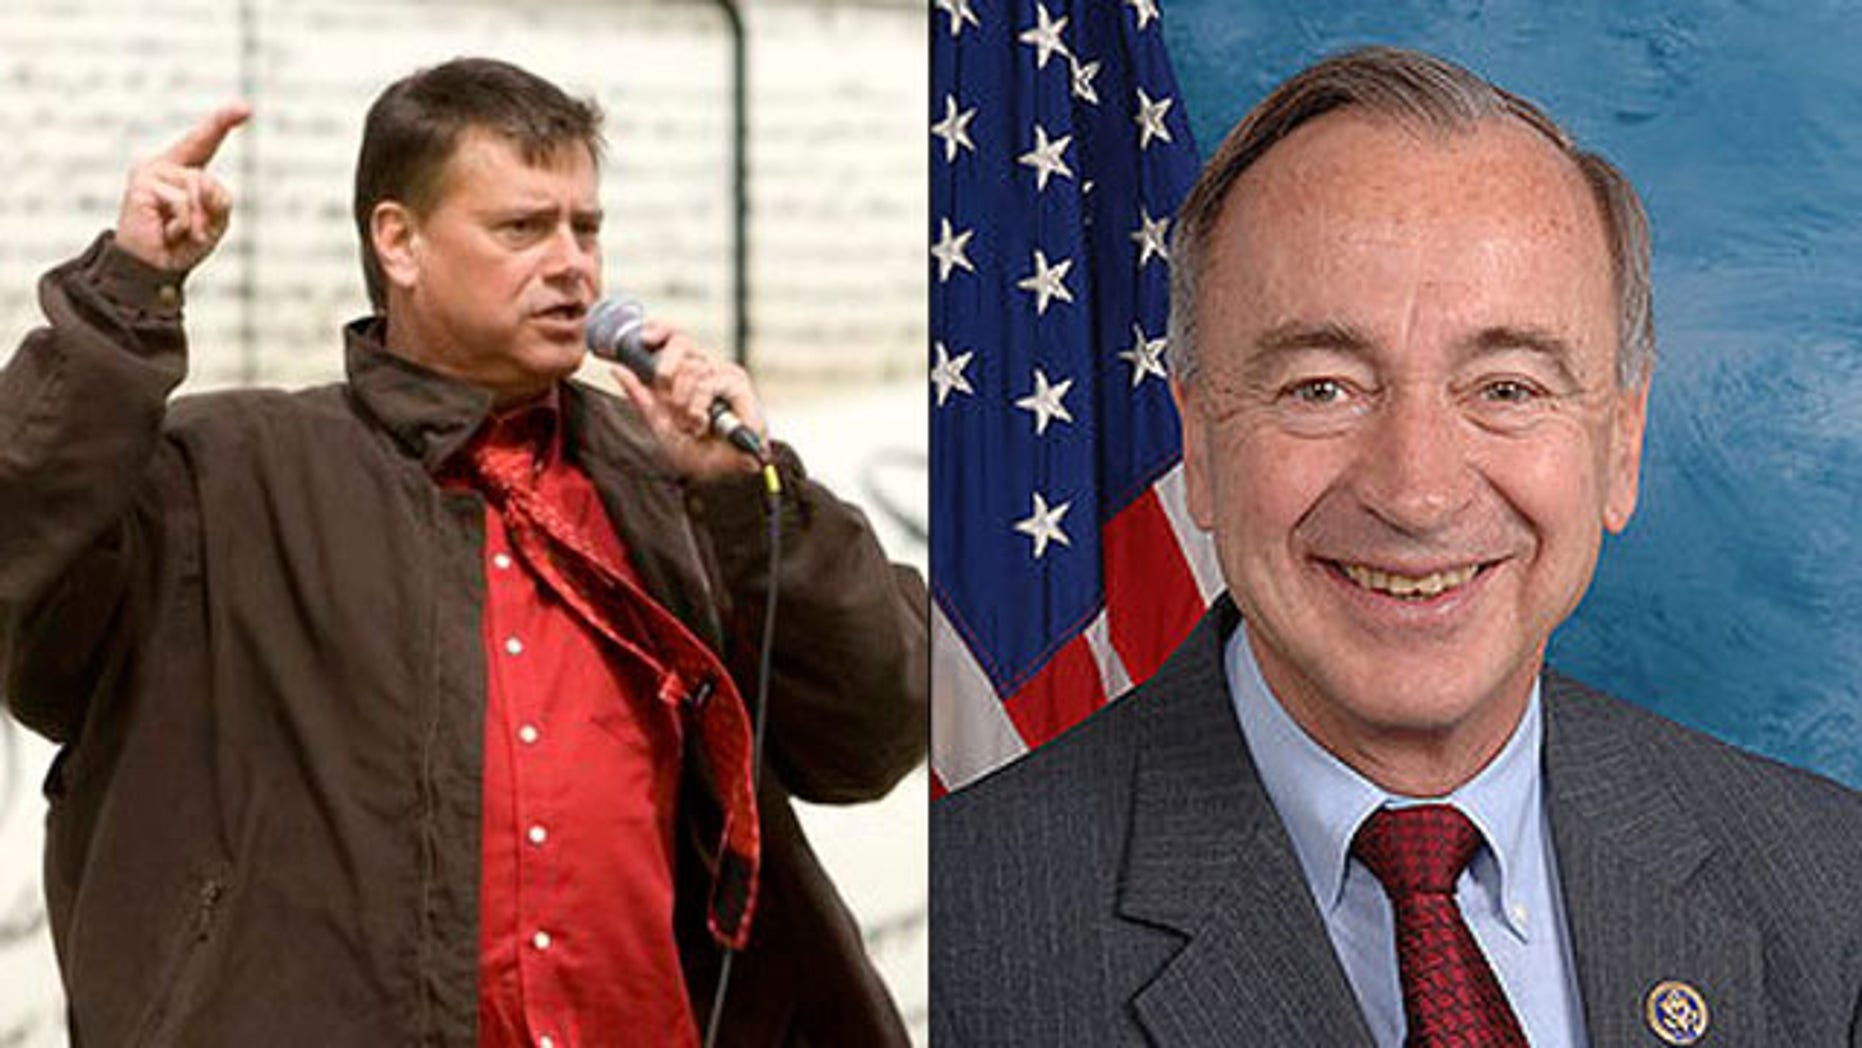 Shown here are Tea Party activist Mark Williams, left, and Rep. Walt Minnick. (AP/House.gov)